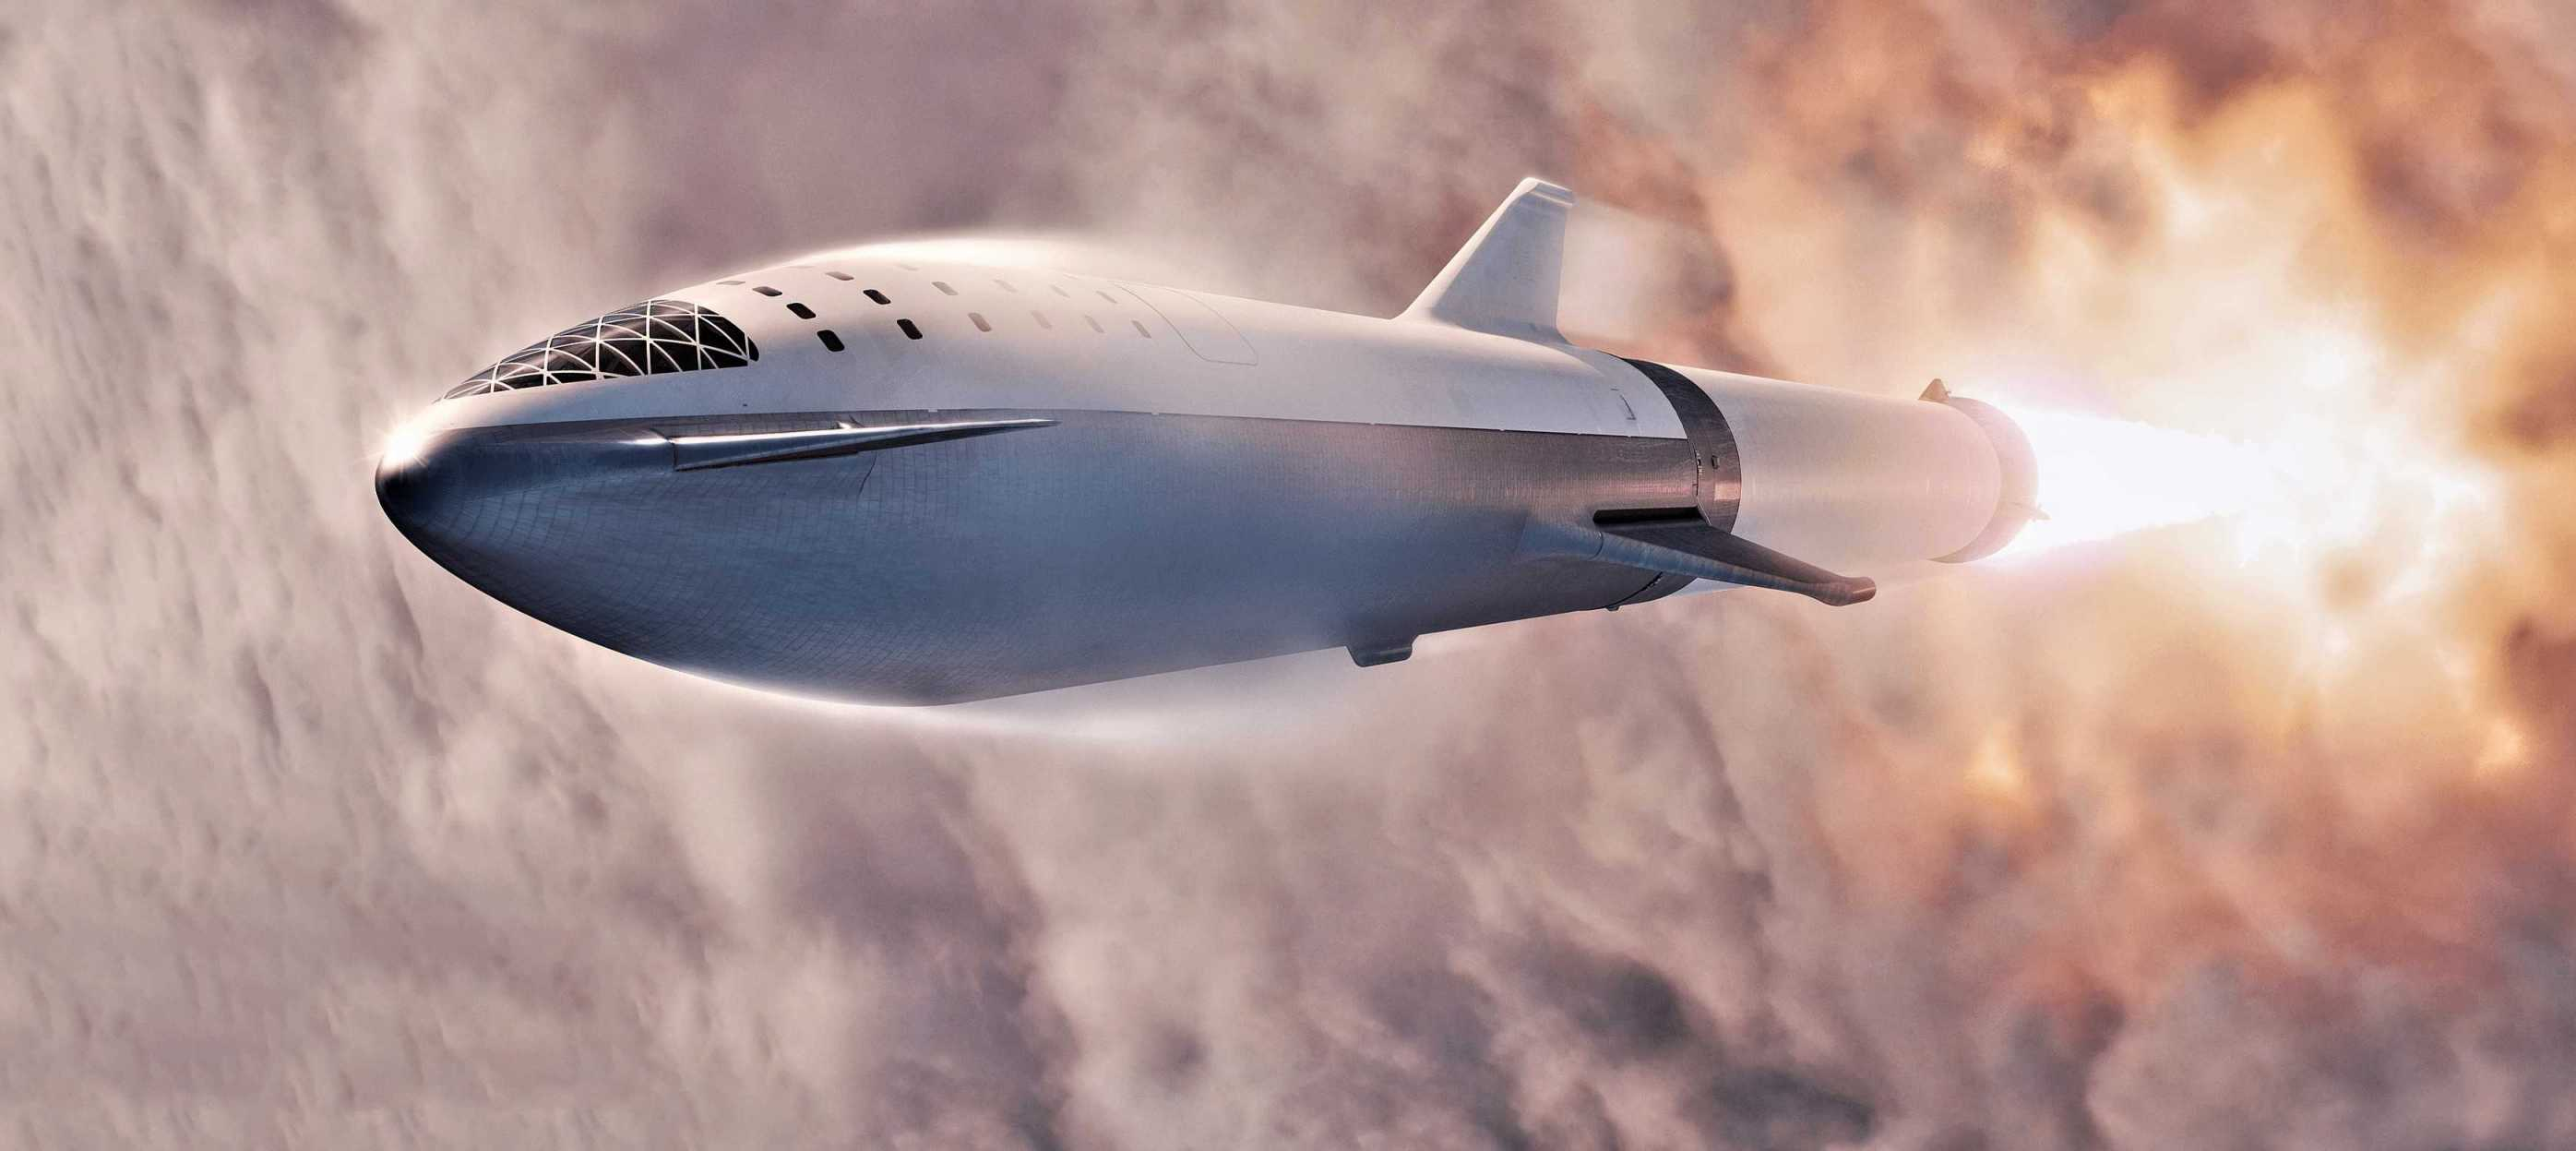 Check Out The Final Look Of The SpaceX Starship